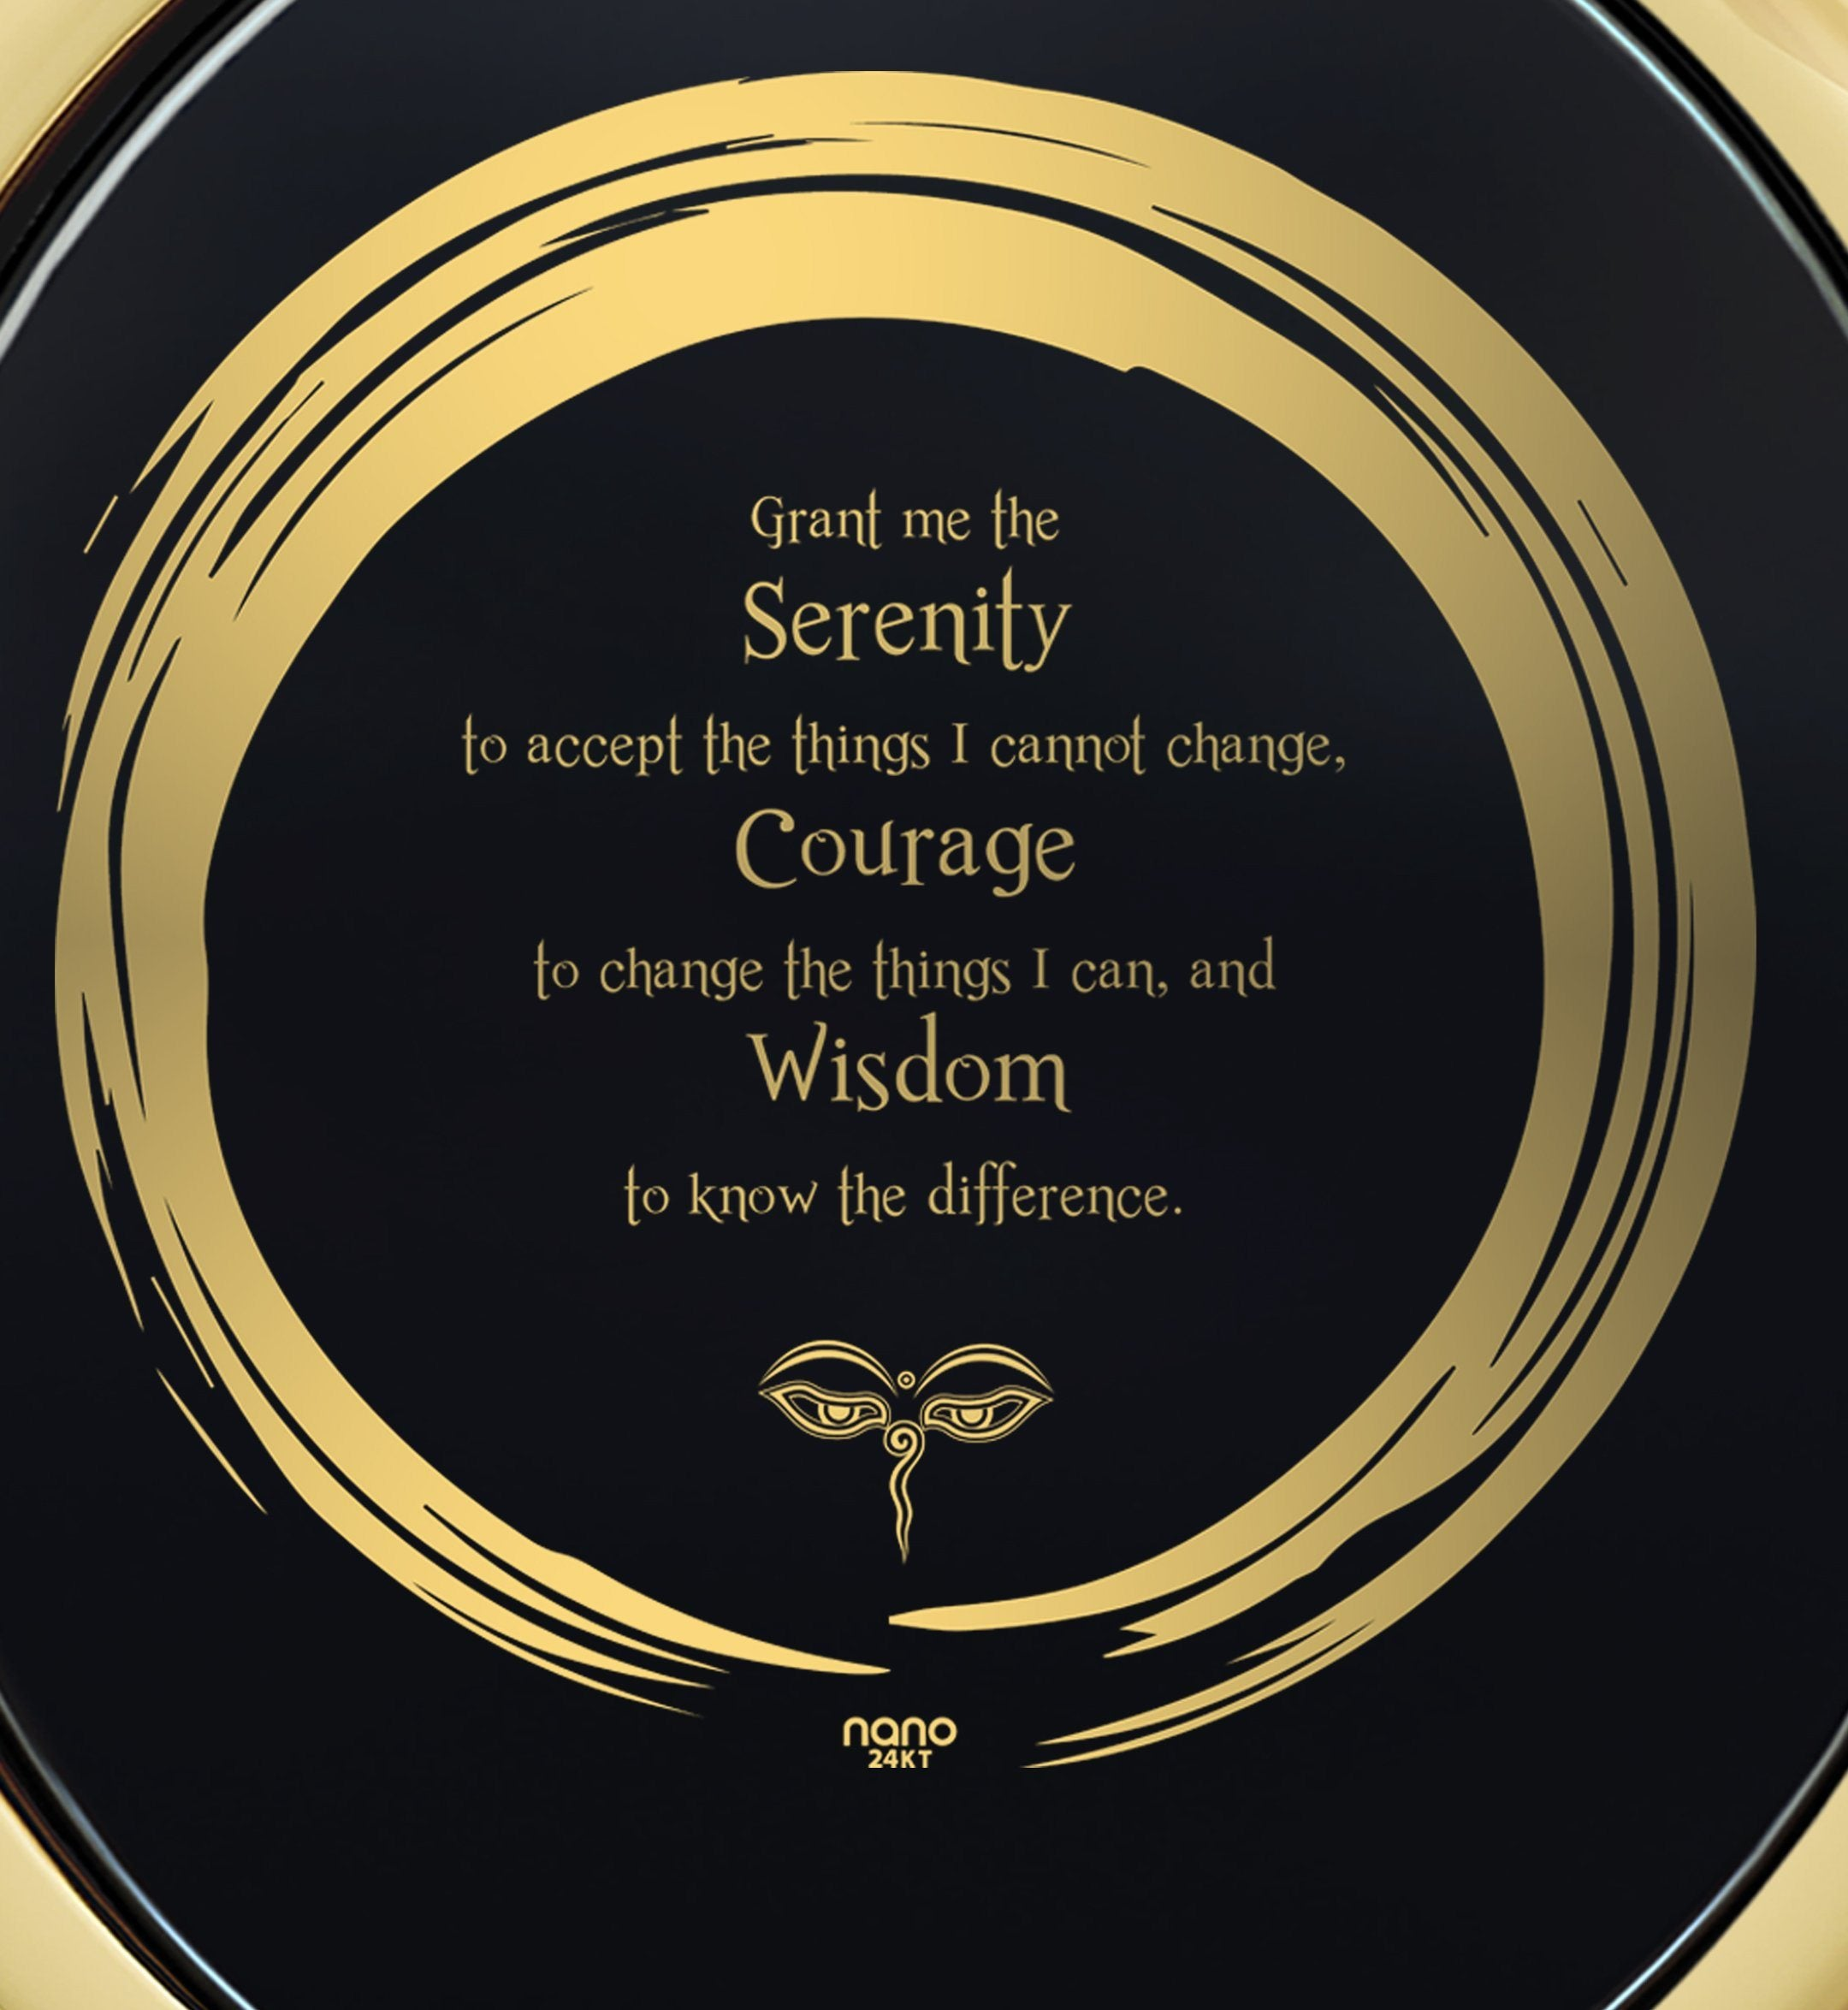 Serenity Prayer Jewelry: Great Gifts for Her, Womens Birthday Presents, Real Gold Necklace, Nano Jewelry